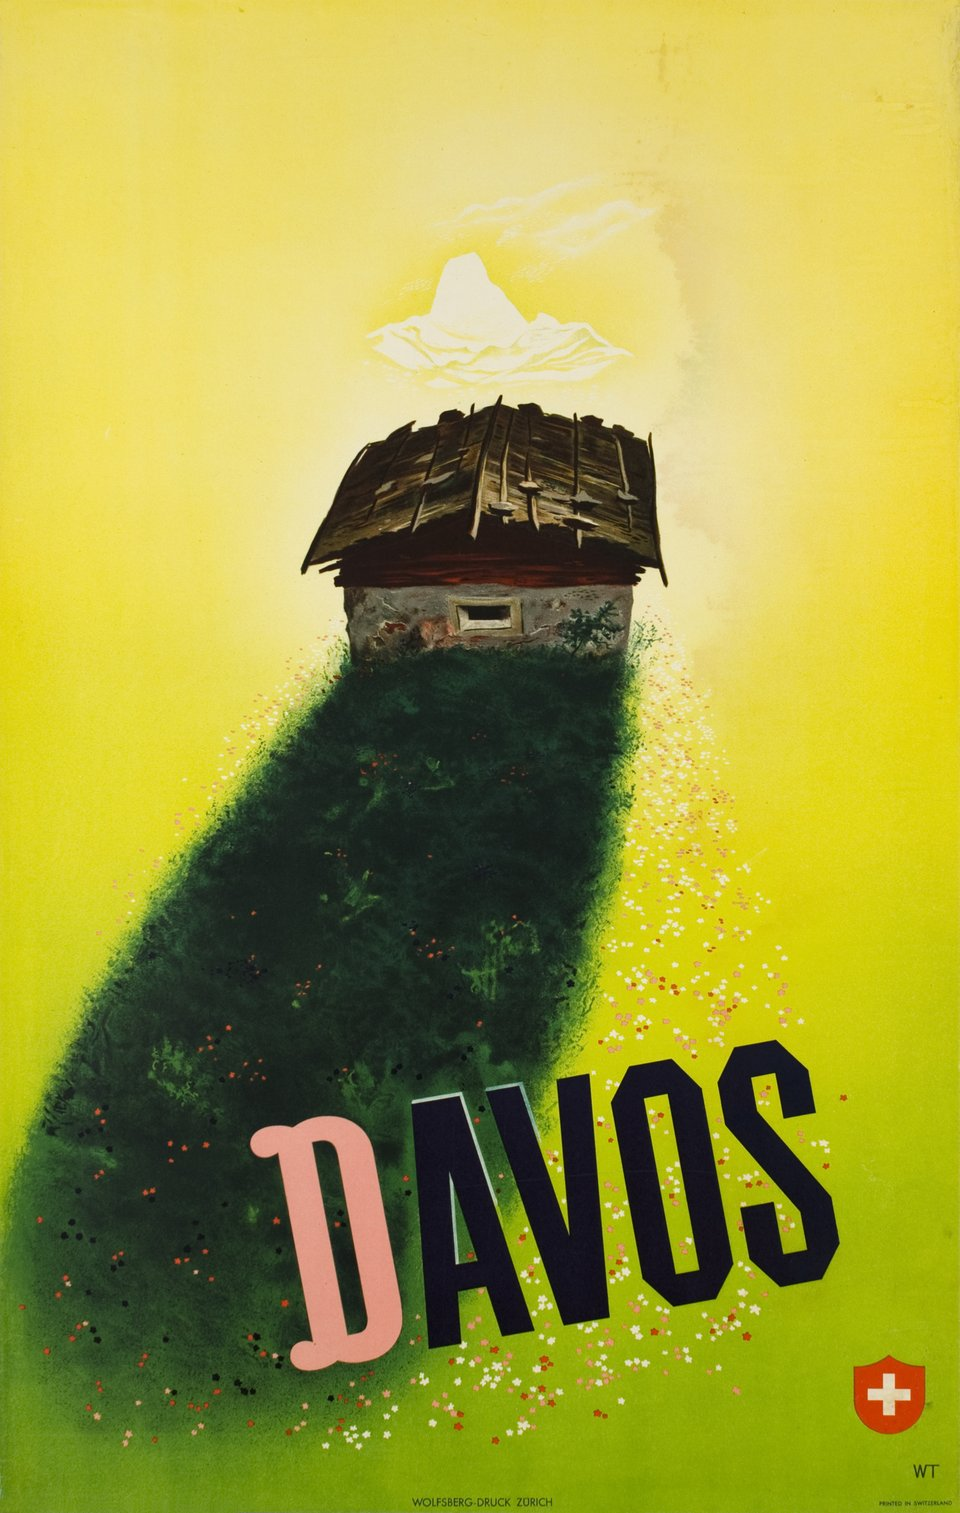 Davos – Vintage poster – Willi TRAPP – 1942